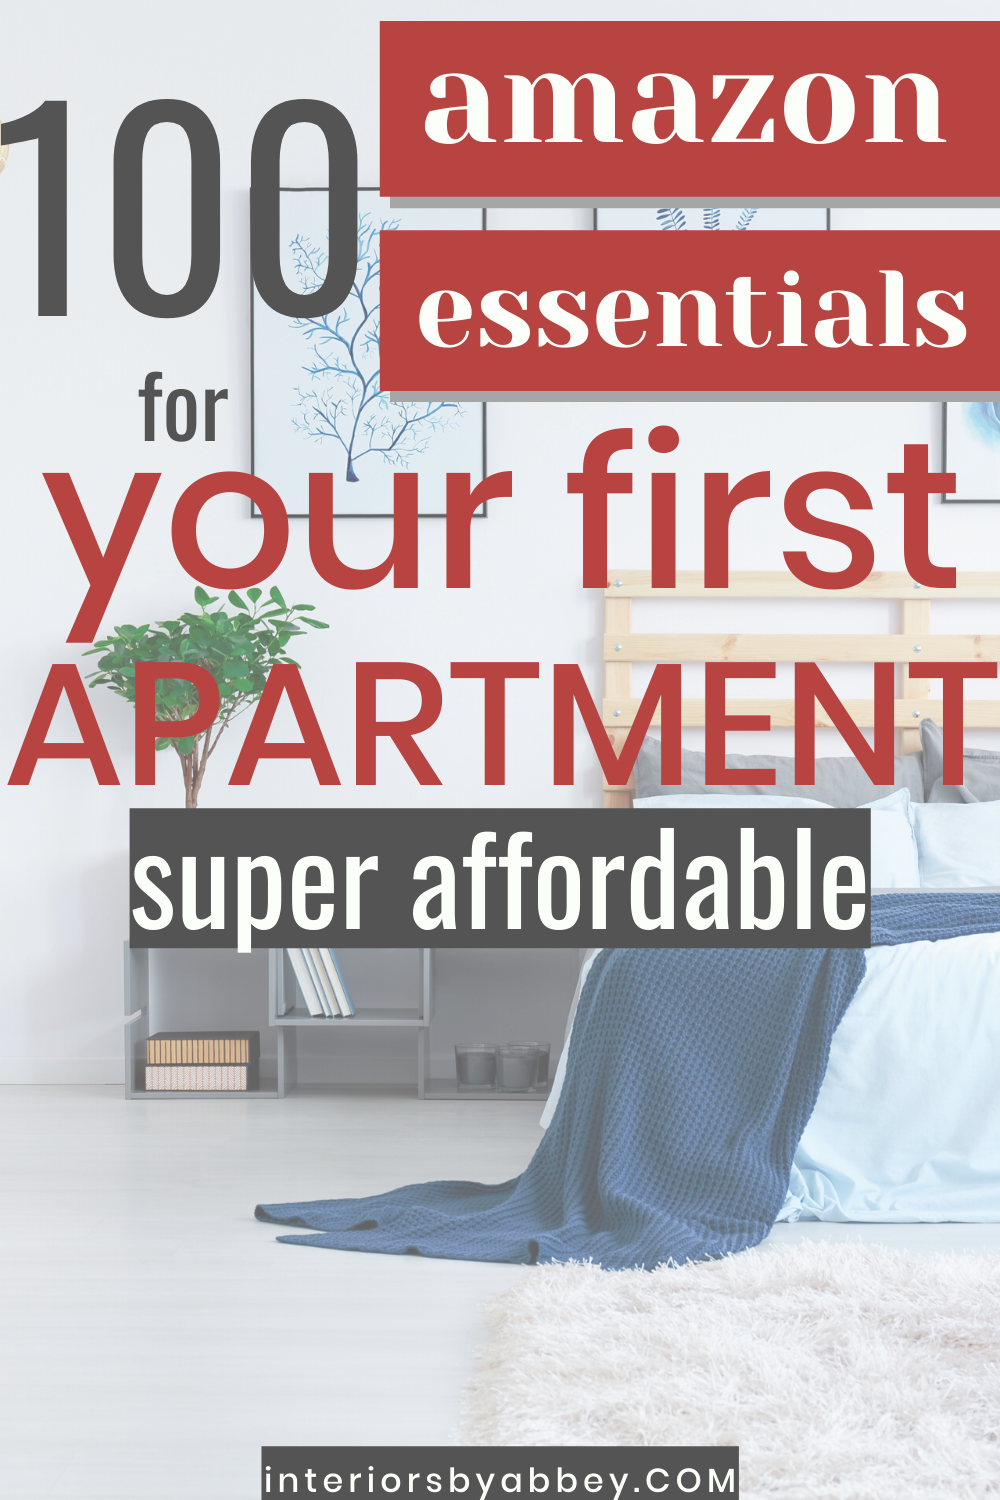 The best affordable amazon finds for your apartment! Cute decor and practical organization to get the most out of your small space. All on a small budget! #amazon #amazonessentials #amazondecor #organization #homedecor #apartment